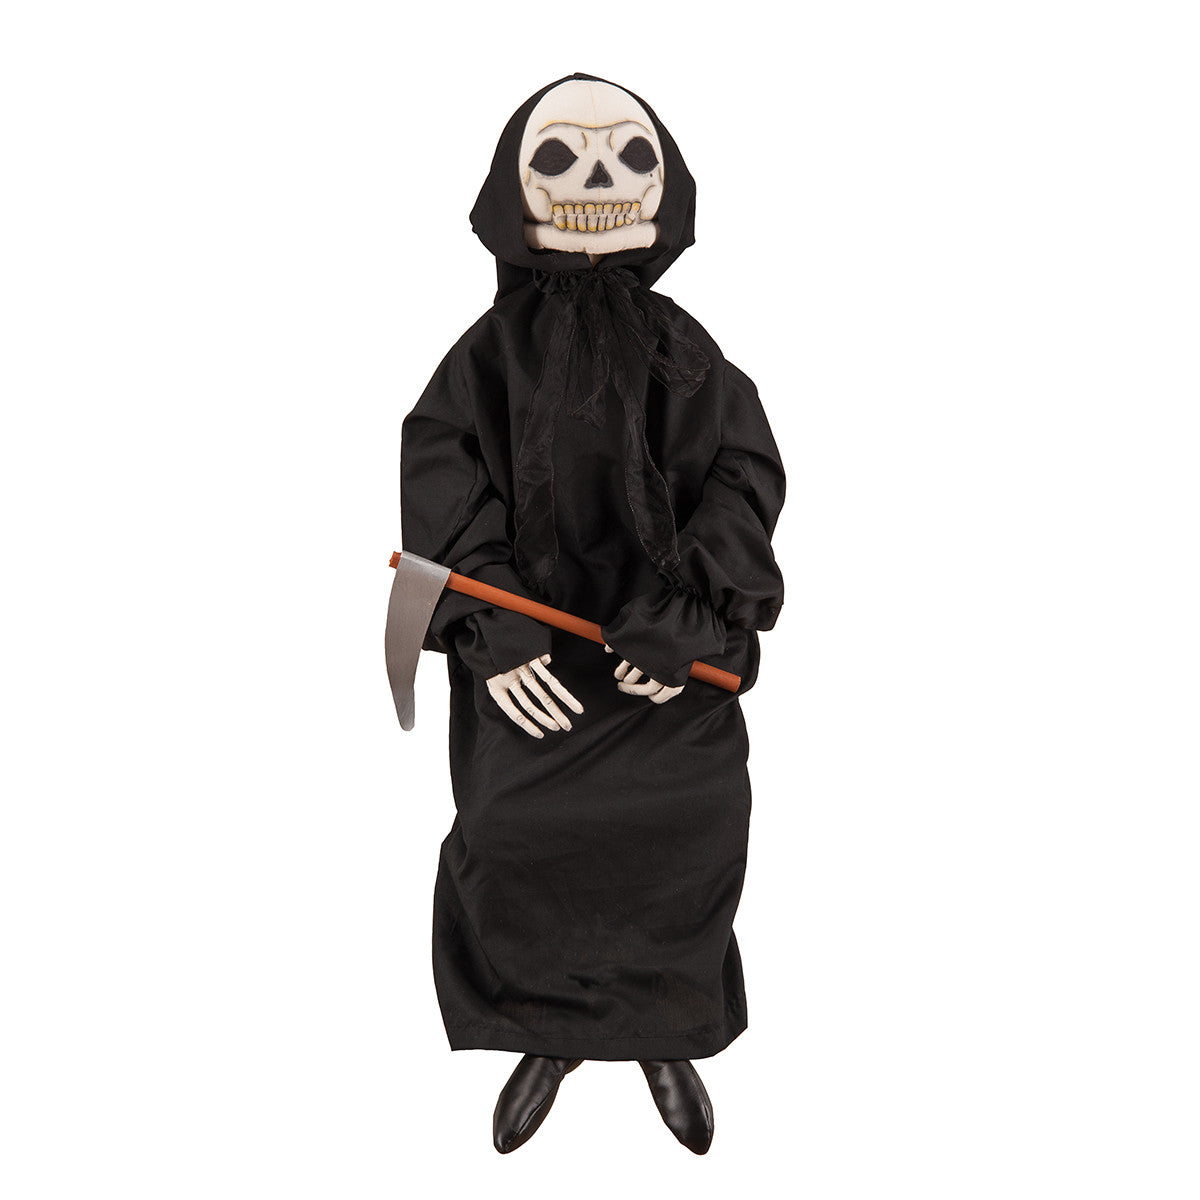 Dunstan Grim Reaper Halloween Doll by Joe Spencer